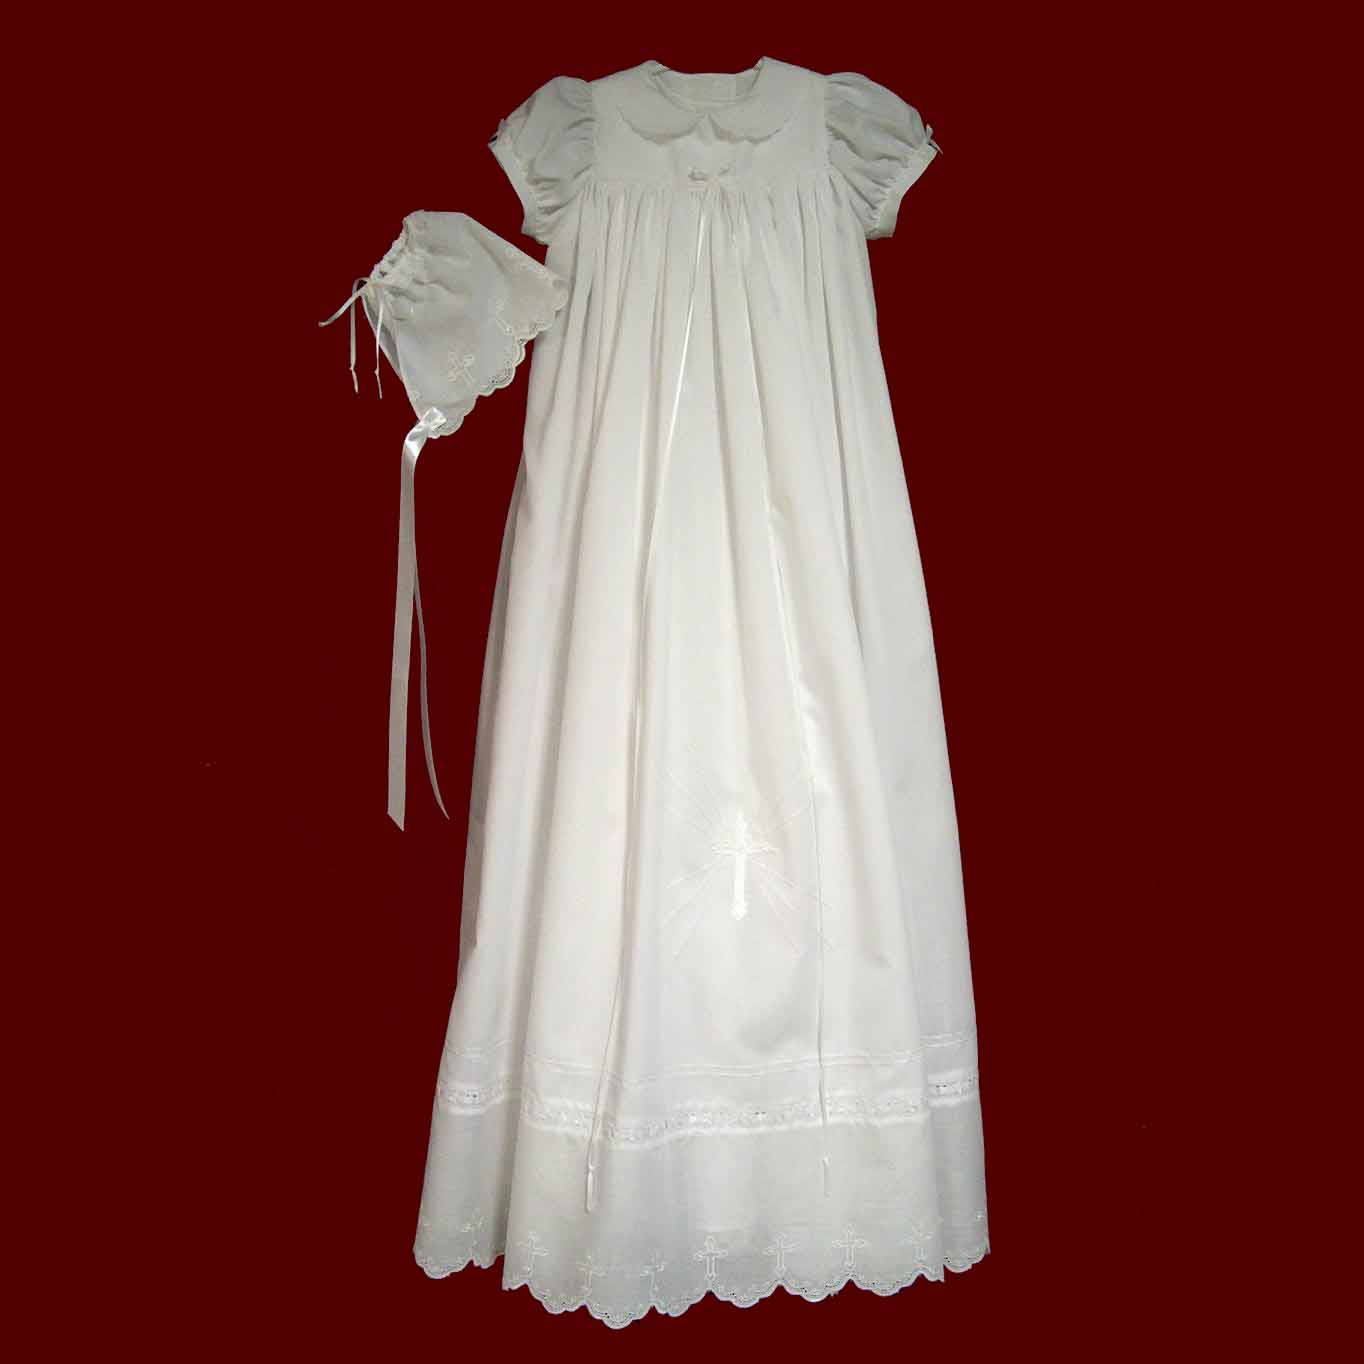 Christening Gowns From Wedding Dresses: Cotton Batiste Christening Gown With Embroidered Cross